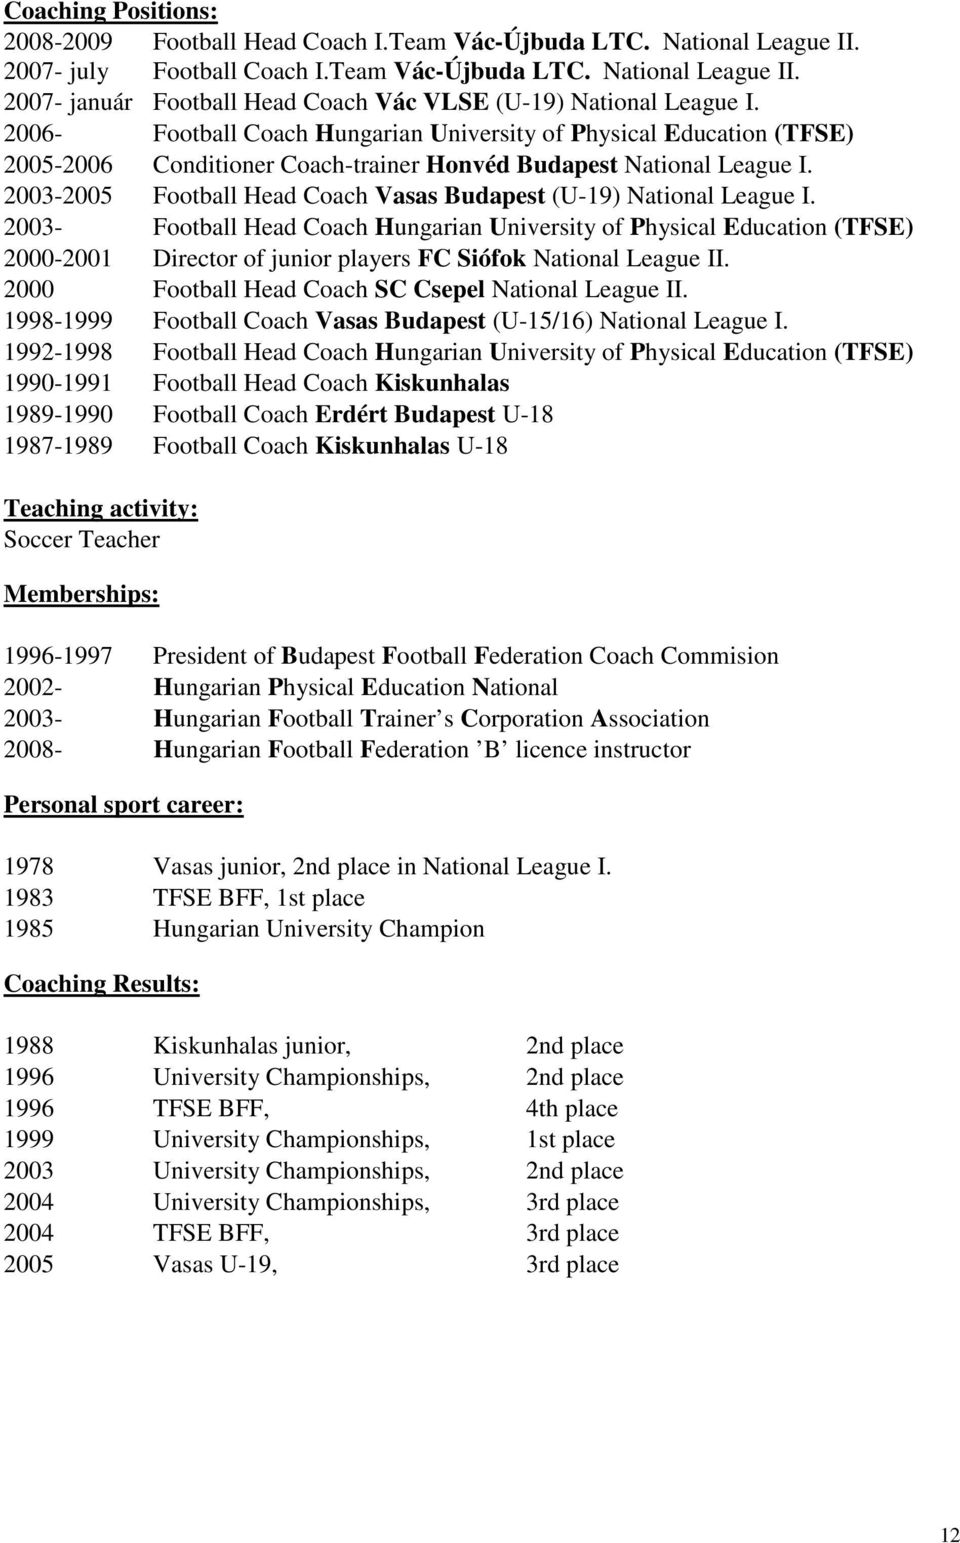 2003-2005 Football Head Coach Vasas Budapest (U-19) National League I.